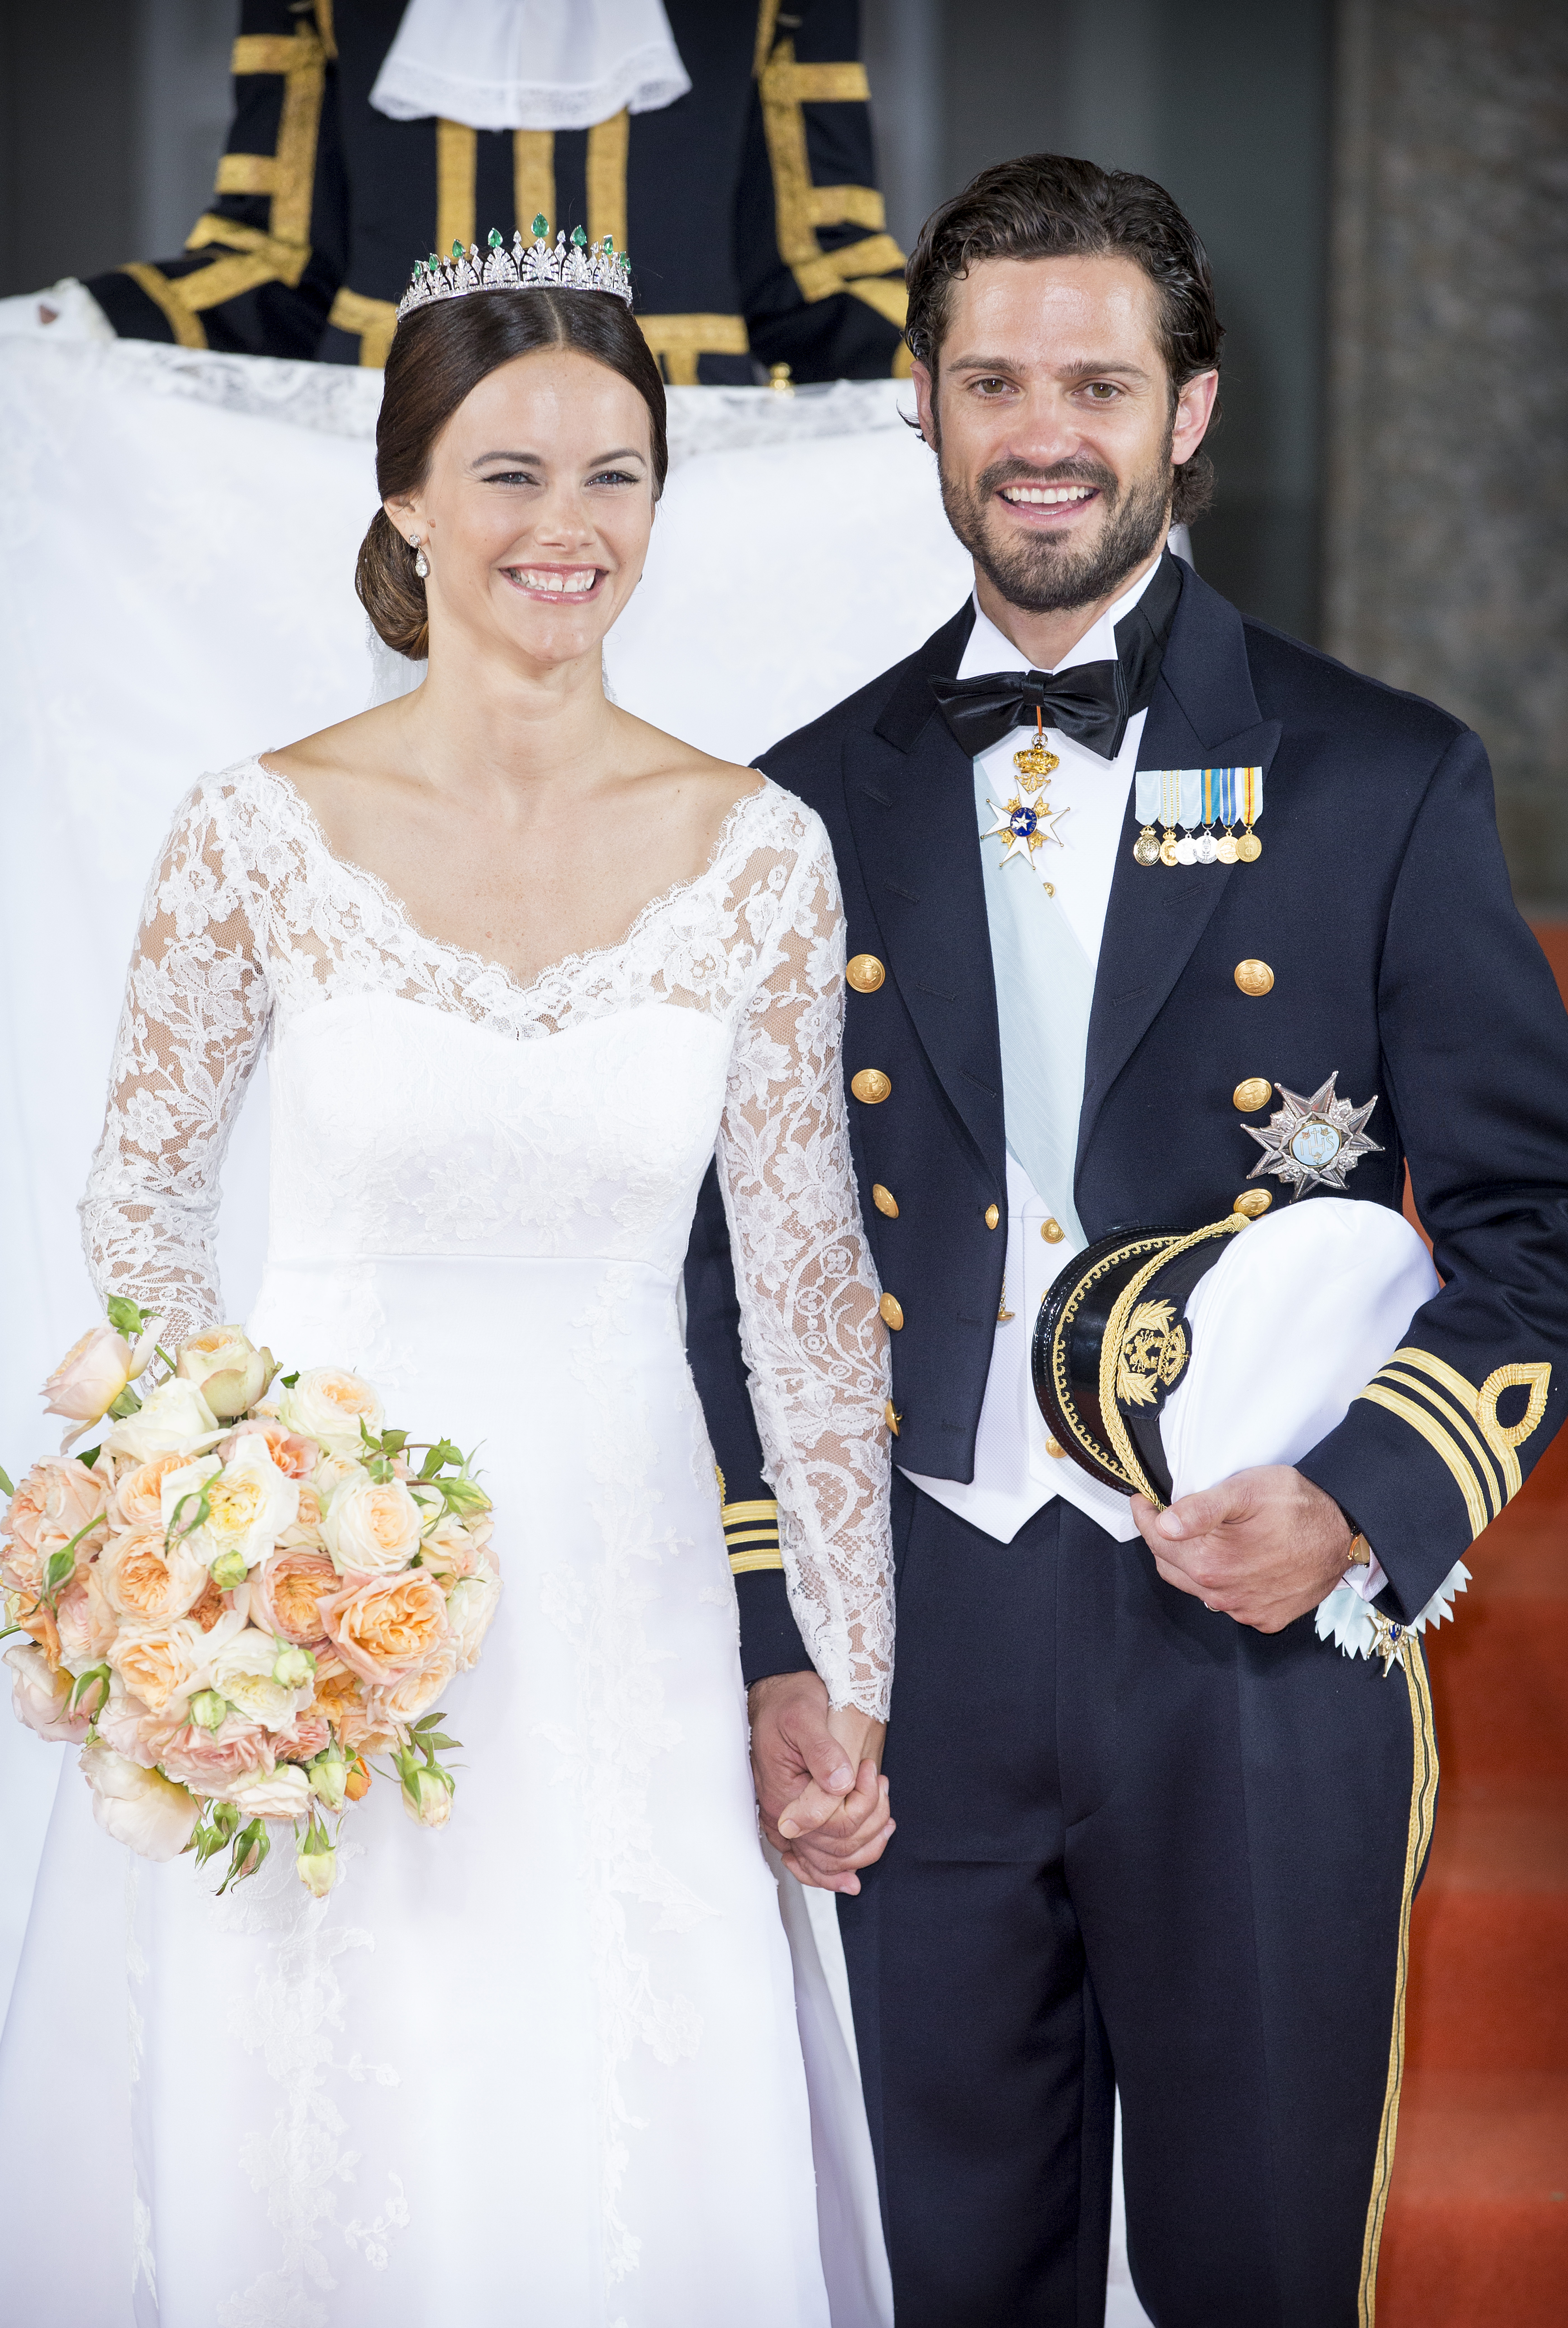 Mandatory Credit: Photo by Tim Rooke/REX/Shutterstock (4848154cs) Prince Carl Philip and Princess Sofia of Sweden The wedding of Prince Carl Philip and Sofia Hellqvist, Royal Palace, Stockholm, Sweden - 13 Jun 2015